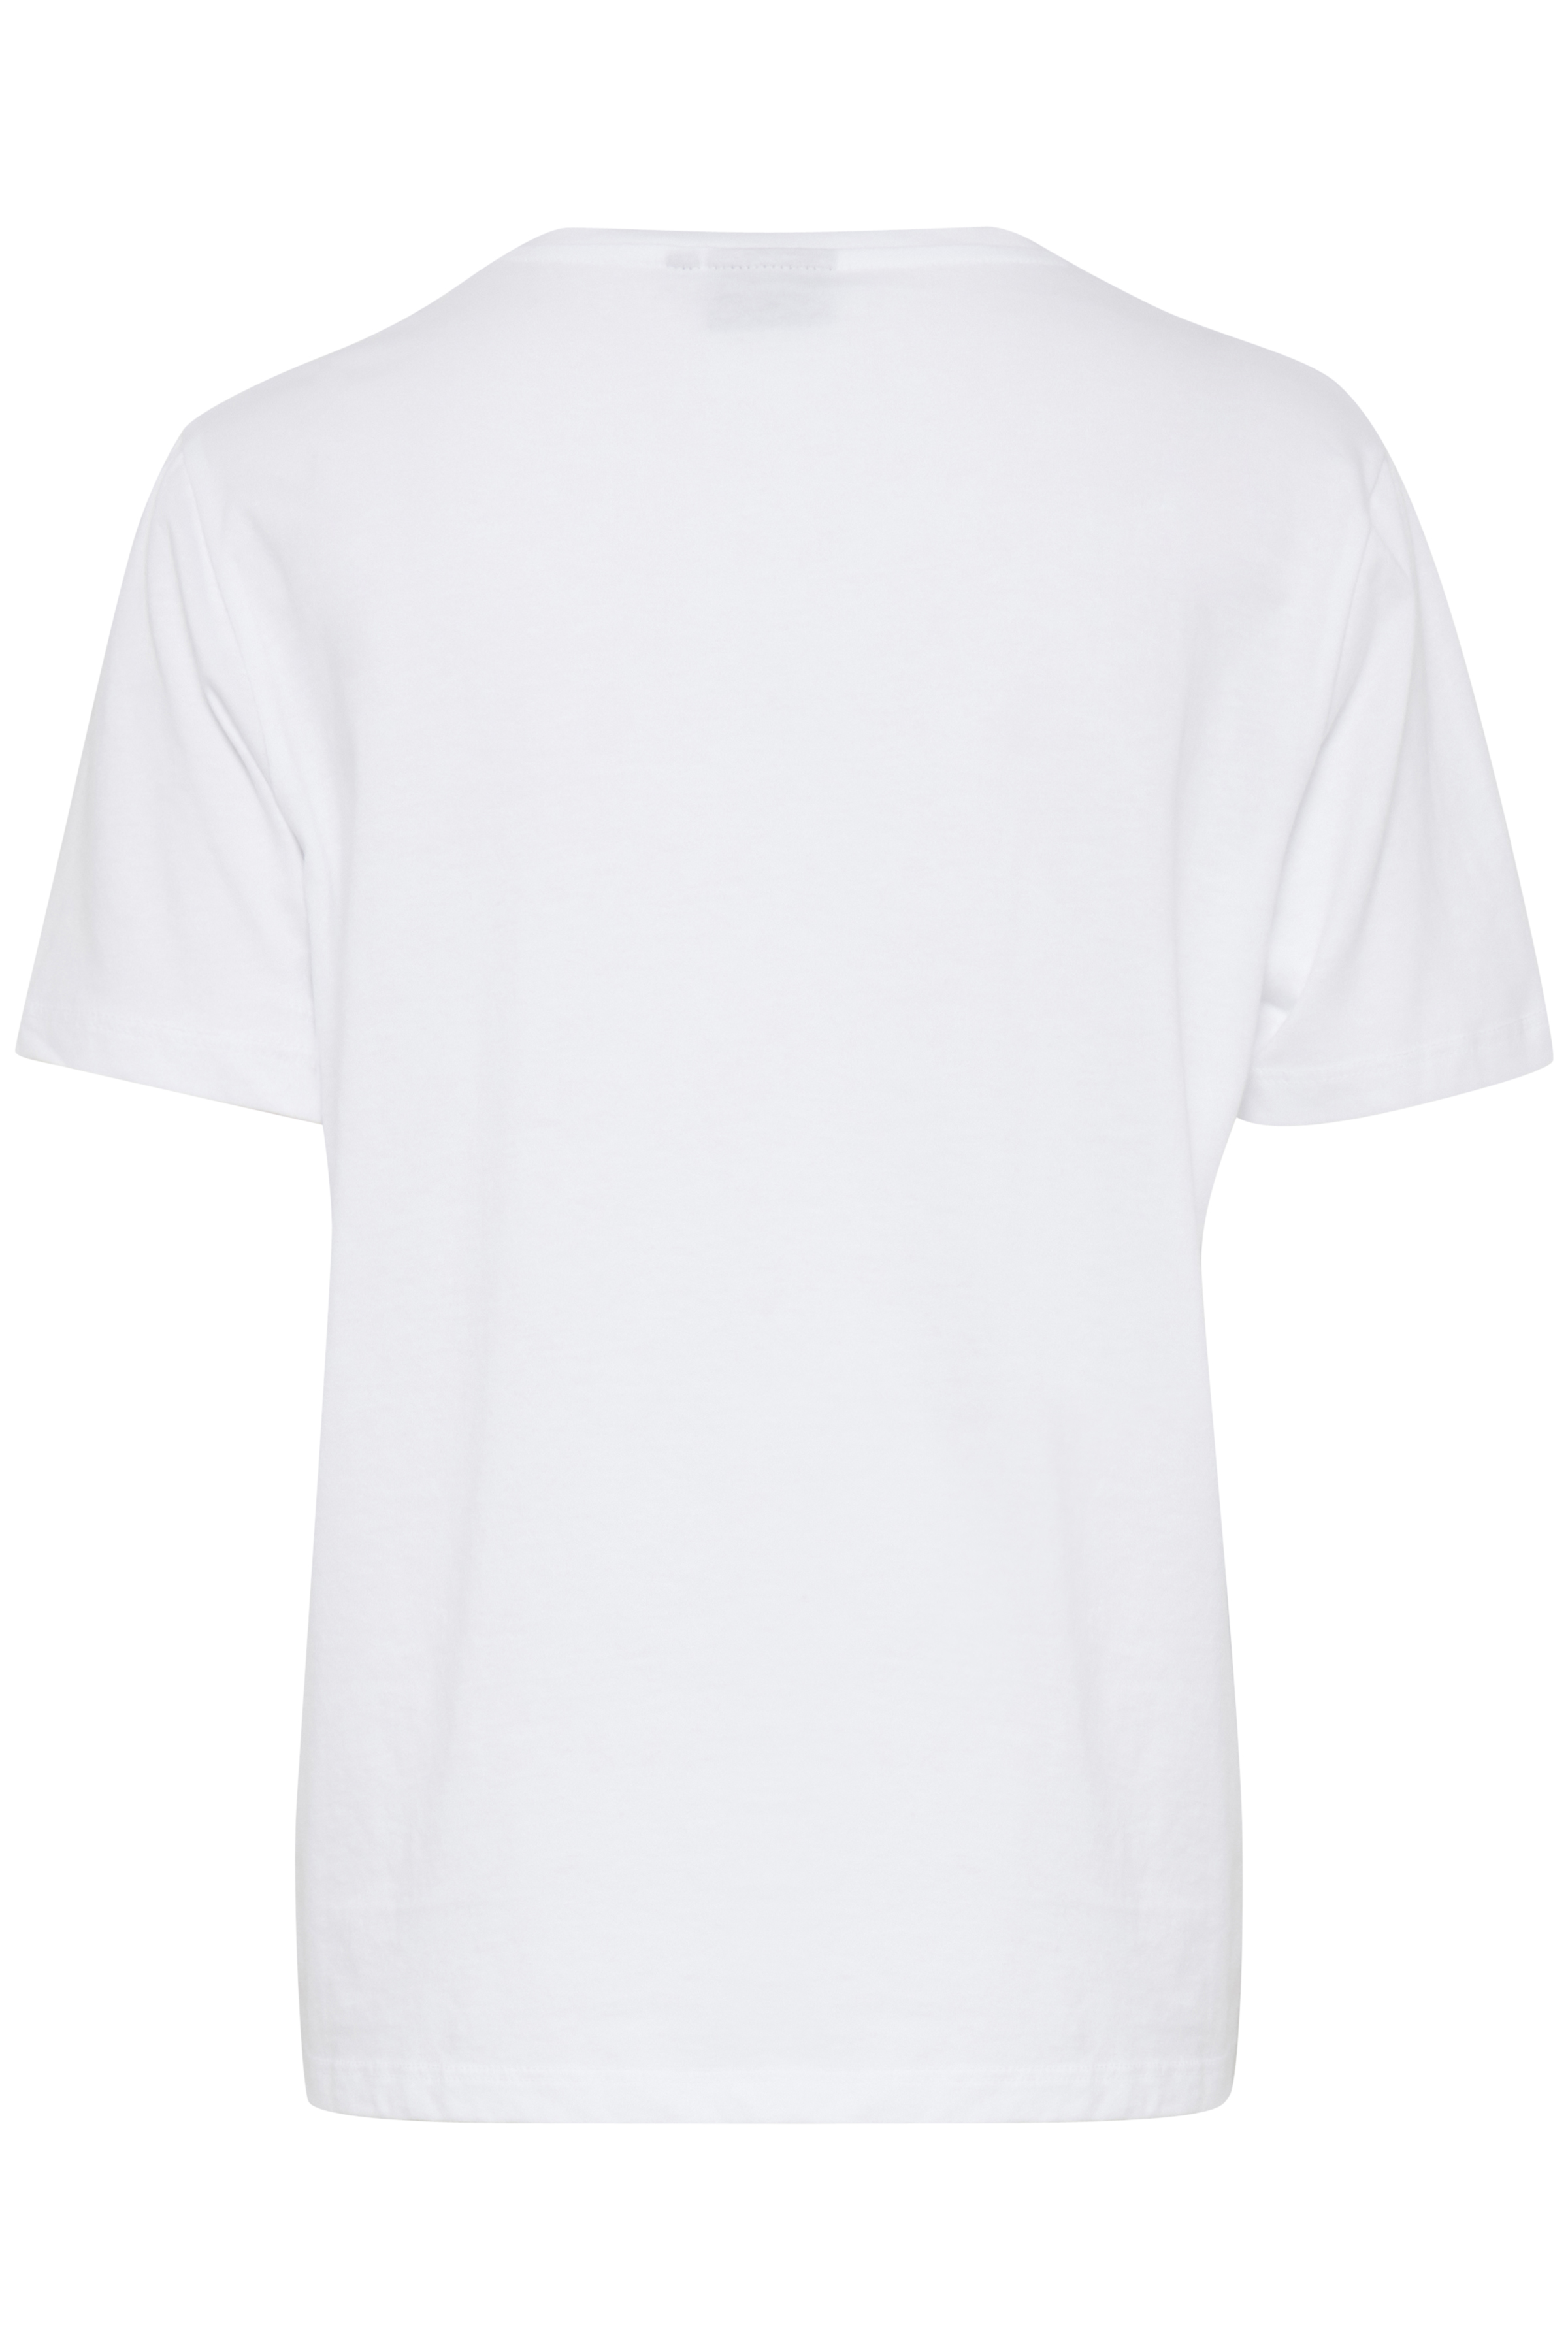 Optical White Combi T-shirt fra b.young – Køb Optical White Combi T-shirt fra str. XS-XXL her